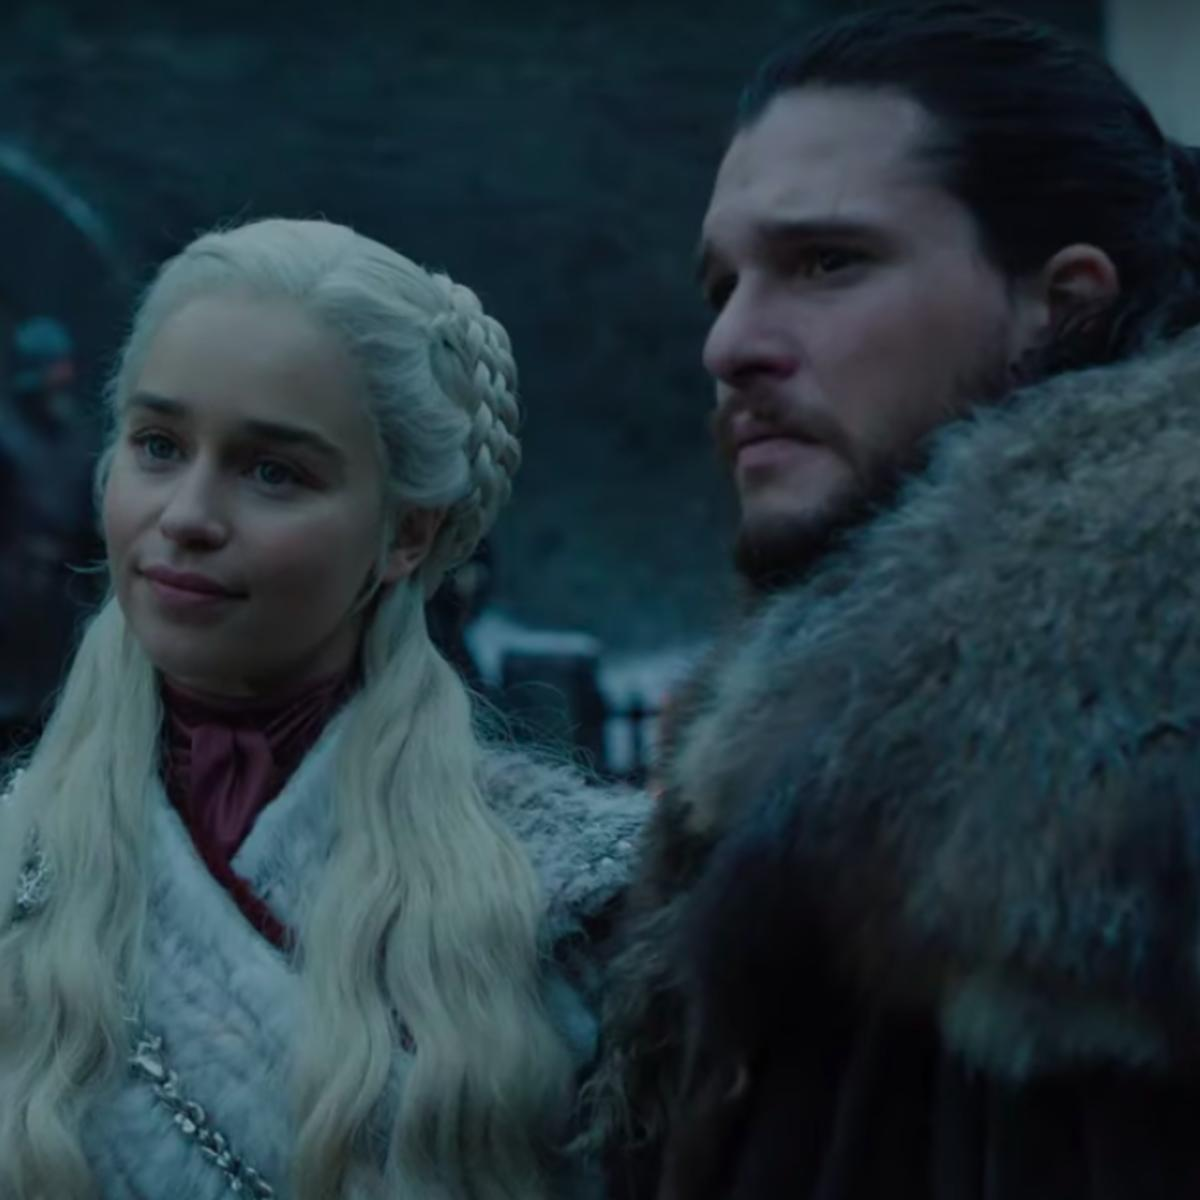 Daenerys meets Sansa in new Game of Thrones teaser